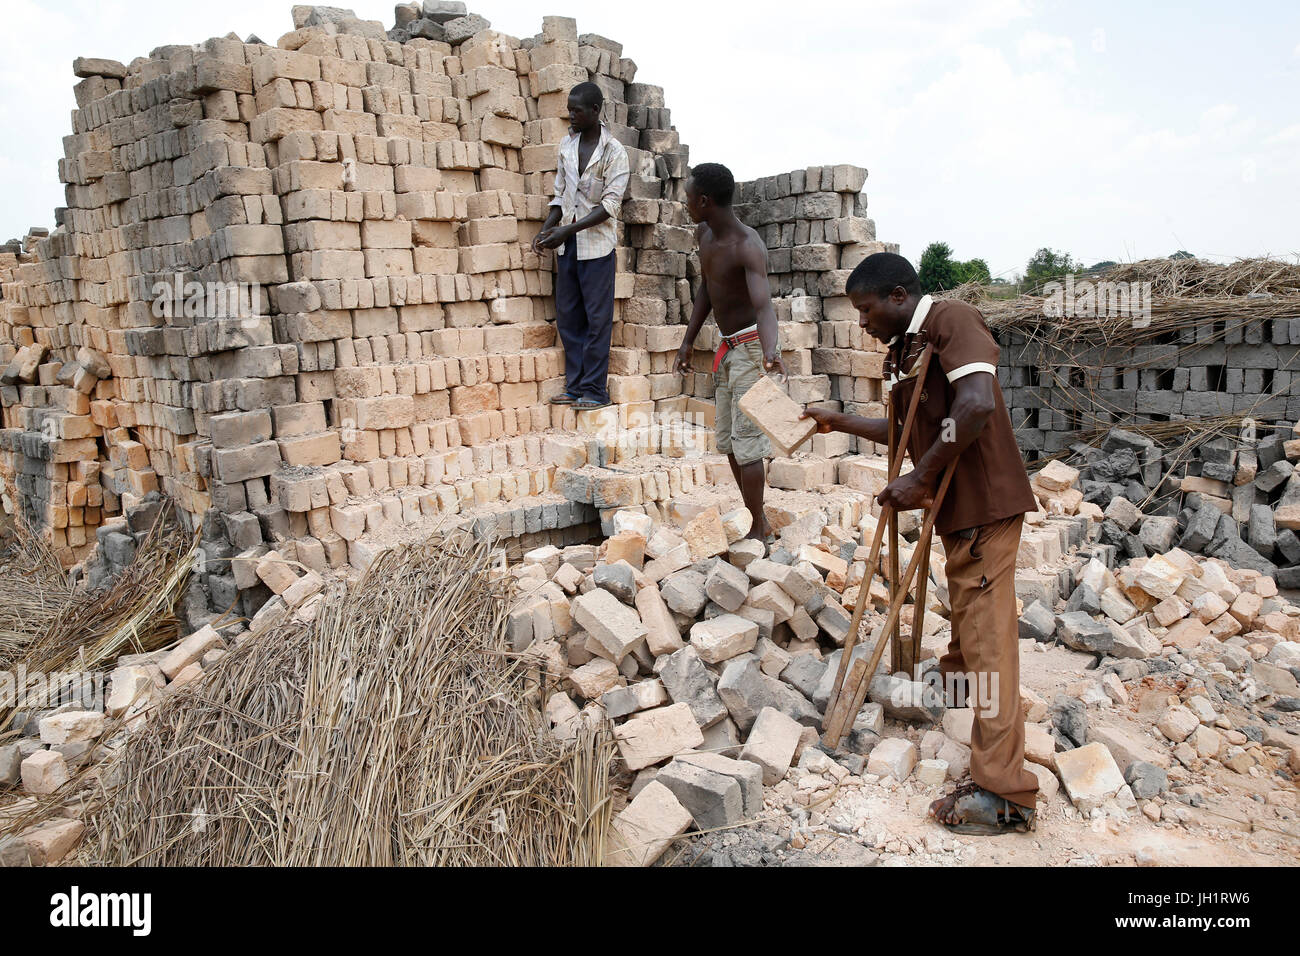 Charles Barikrungi received 4 loans from ENCOT Microfinance. He employs 20 workers on his brick factory. Uganda. - Stock Image